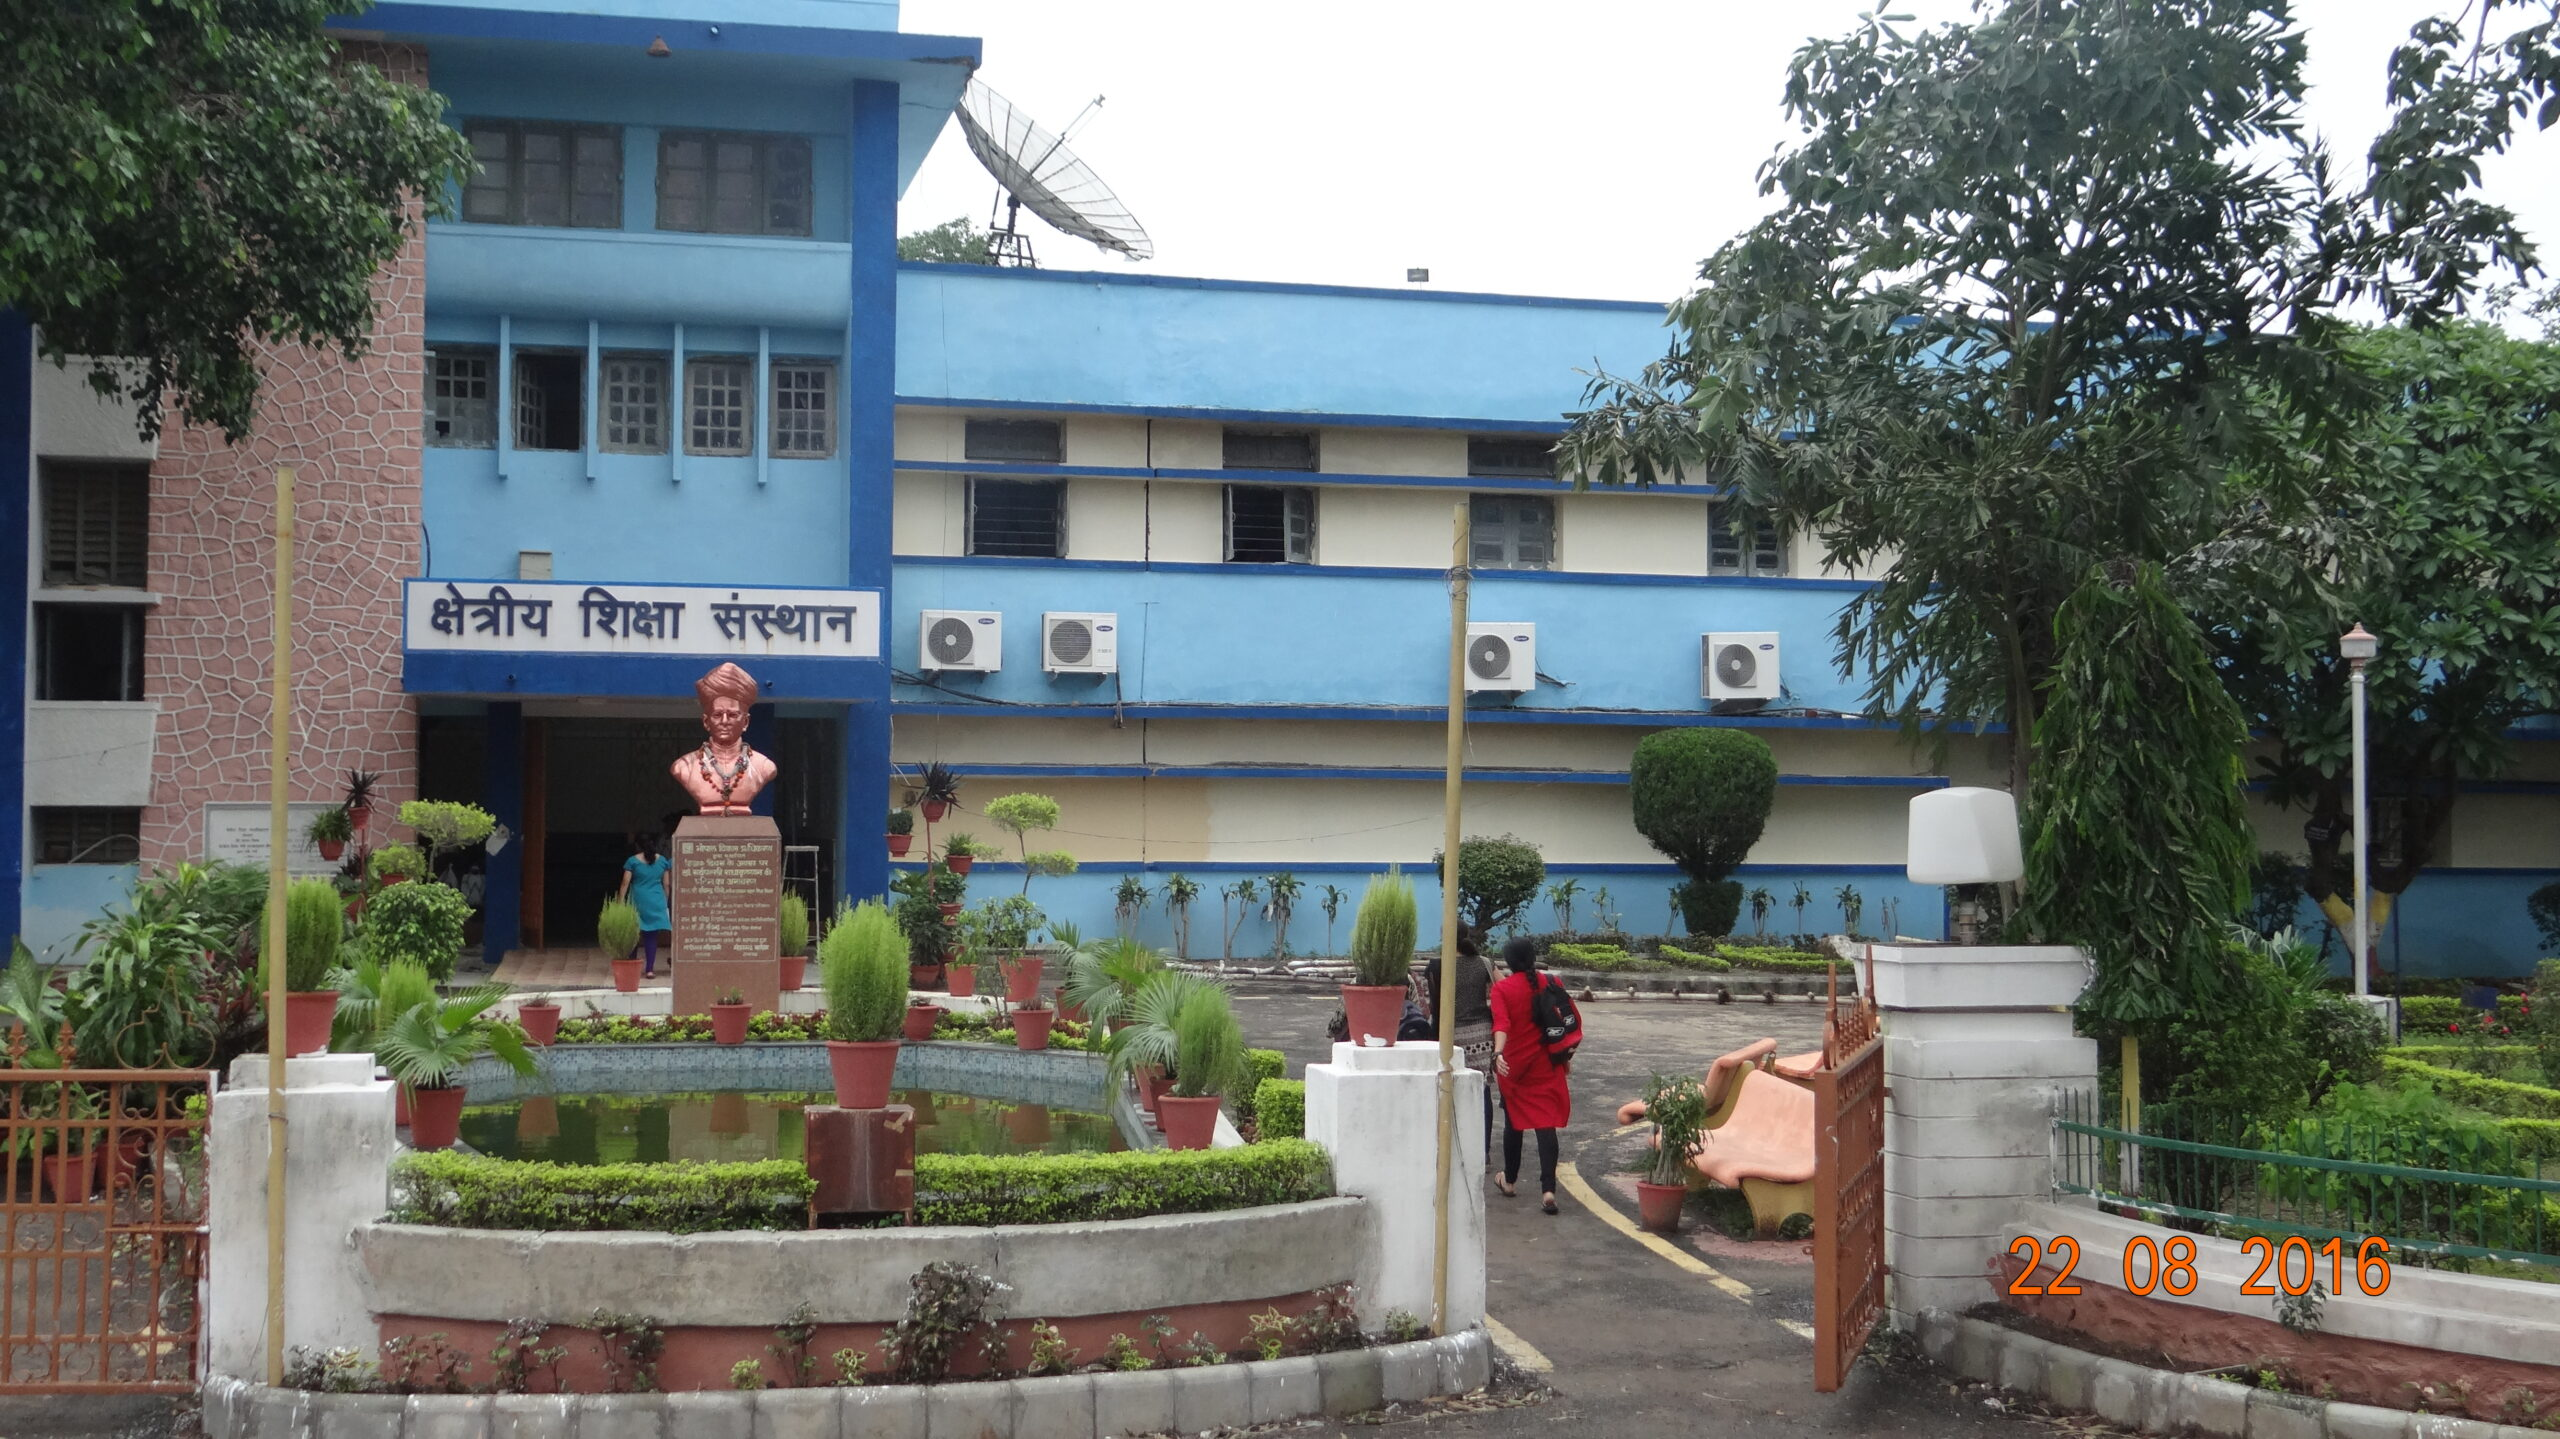 Call for Papers: Regional Institute of Education, Bhopal's Journal of Education: Submit by Dec 31